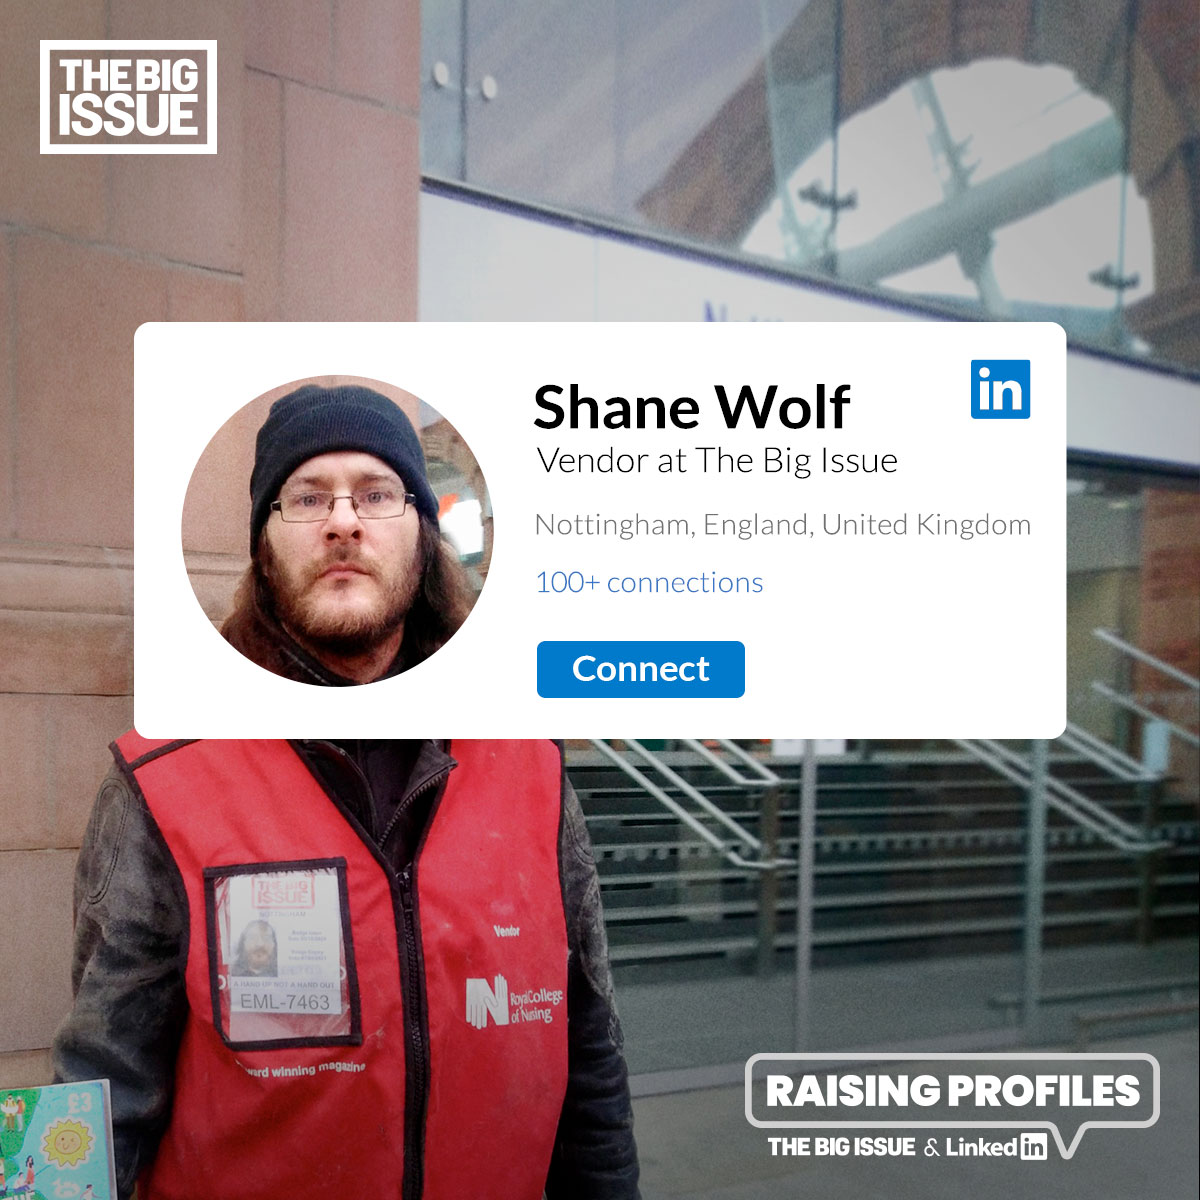 The Big Issue vendor - Shane Wolf